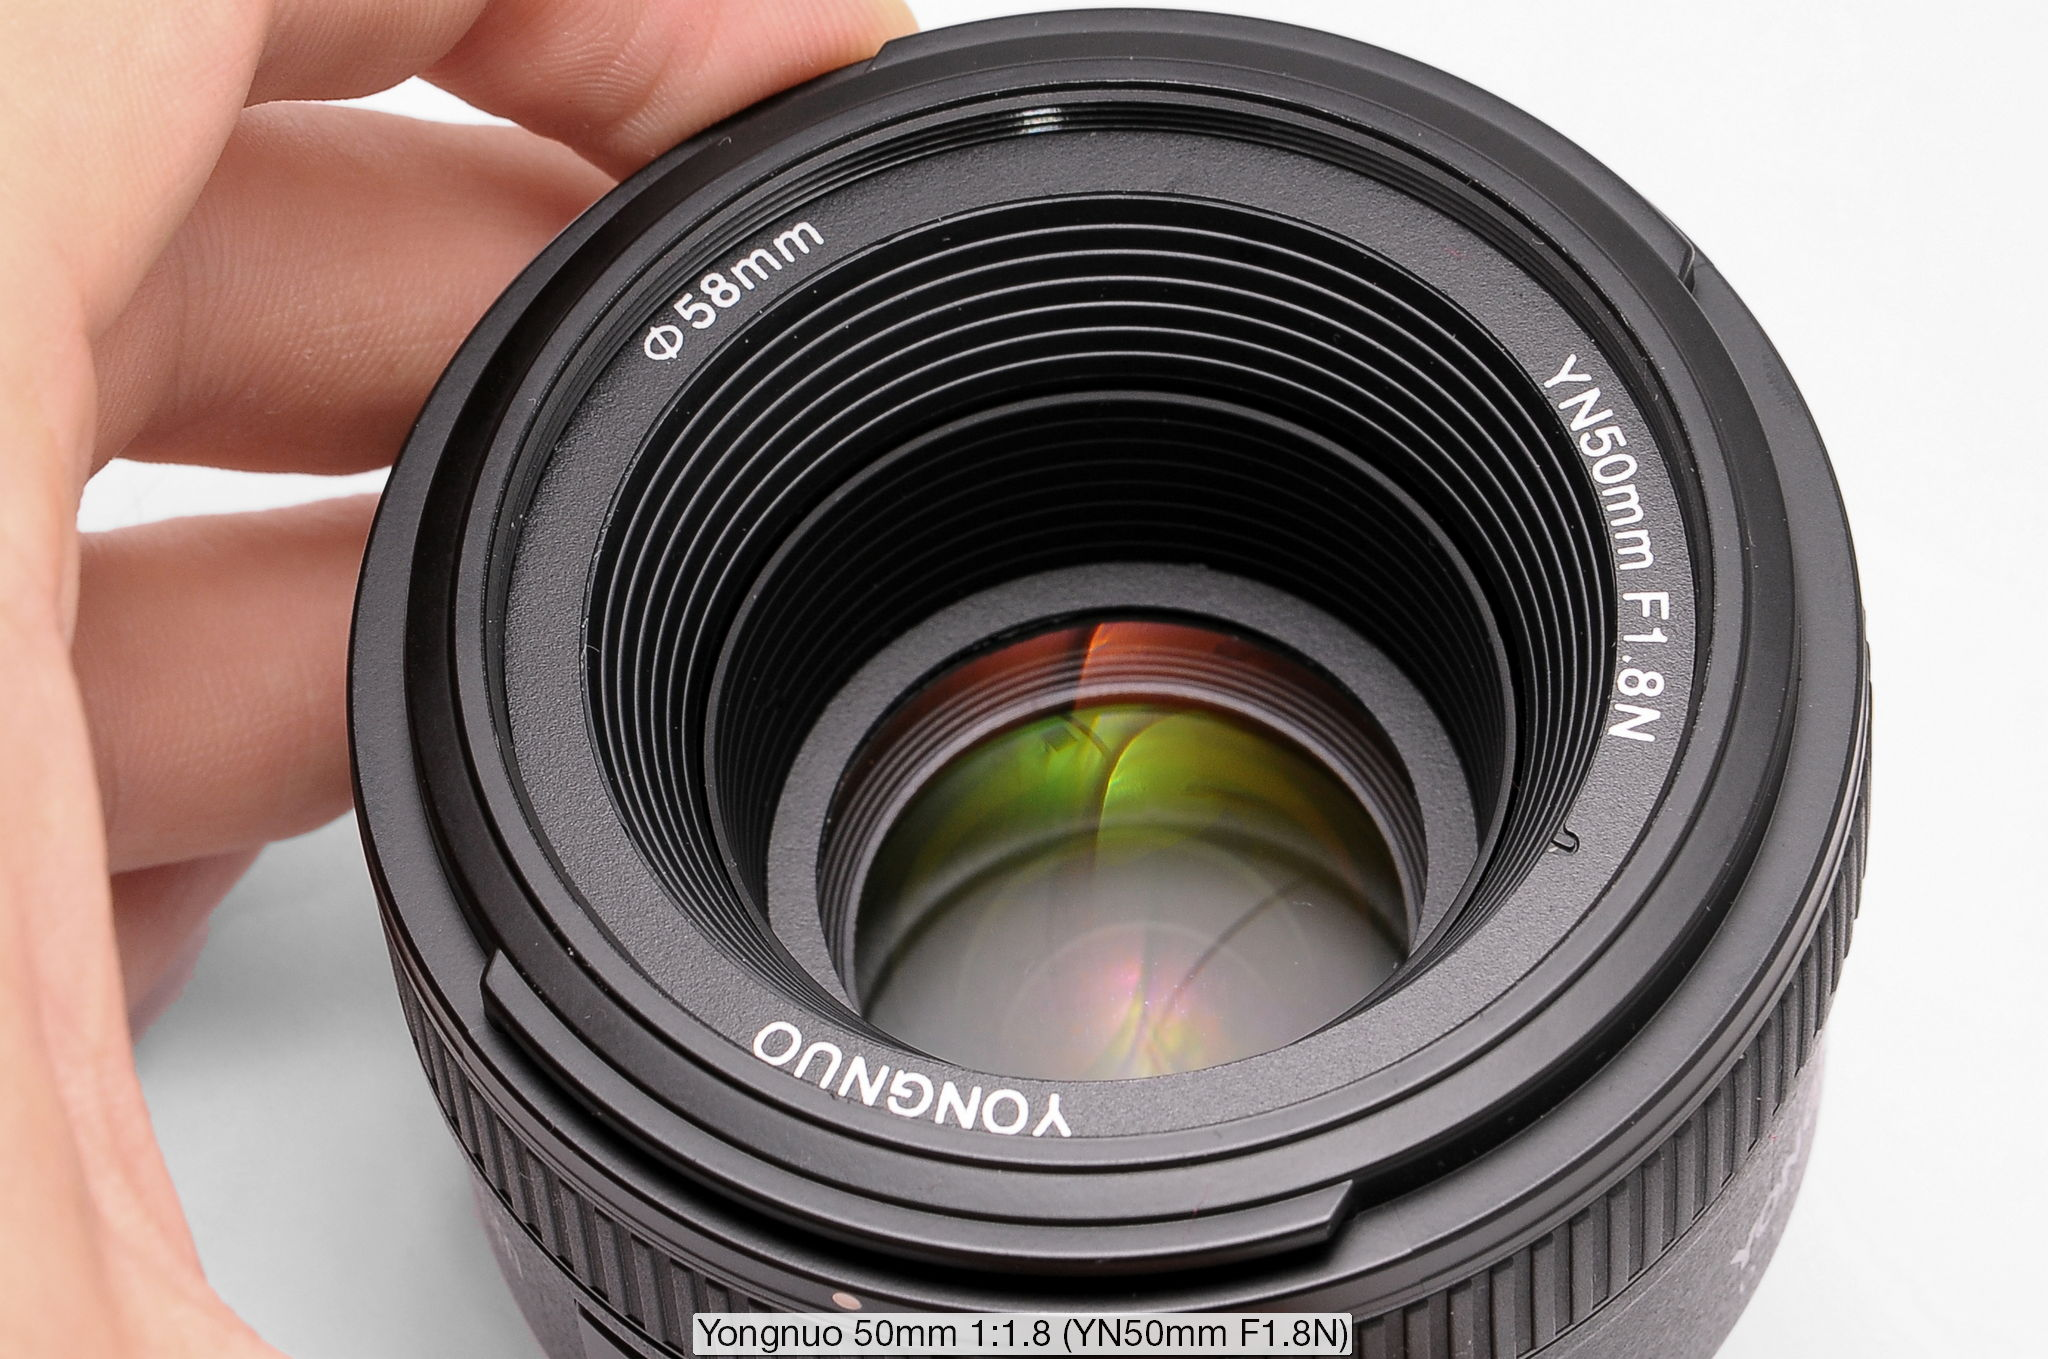 Yongnuo YN 50mm f/1 8 lens review (for Nikon F-mount